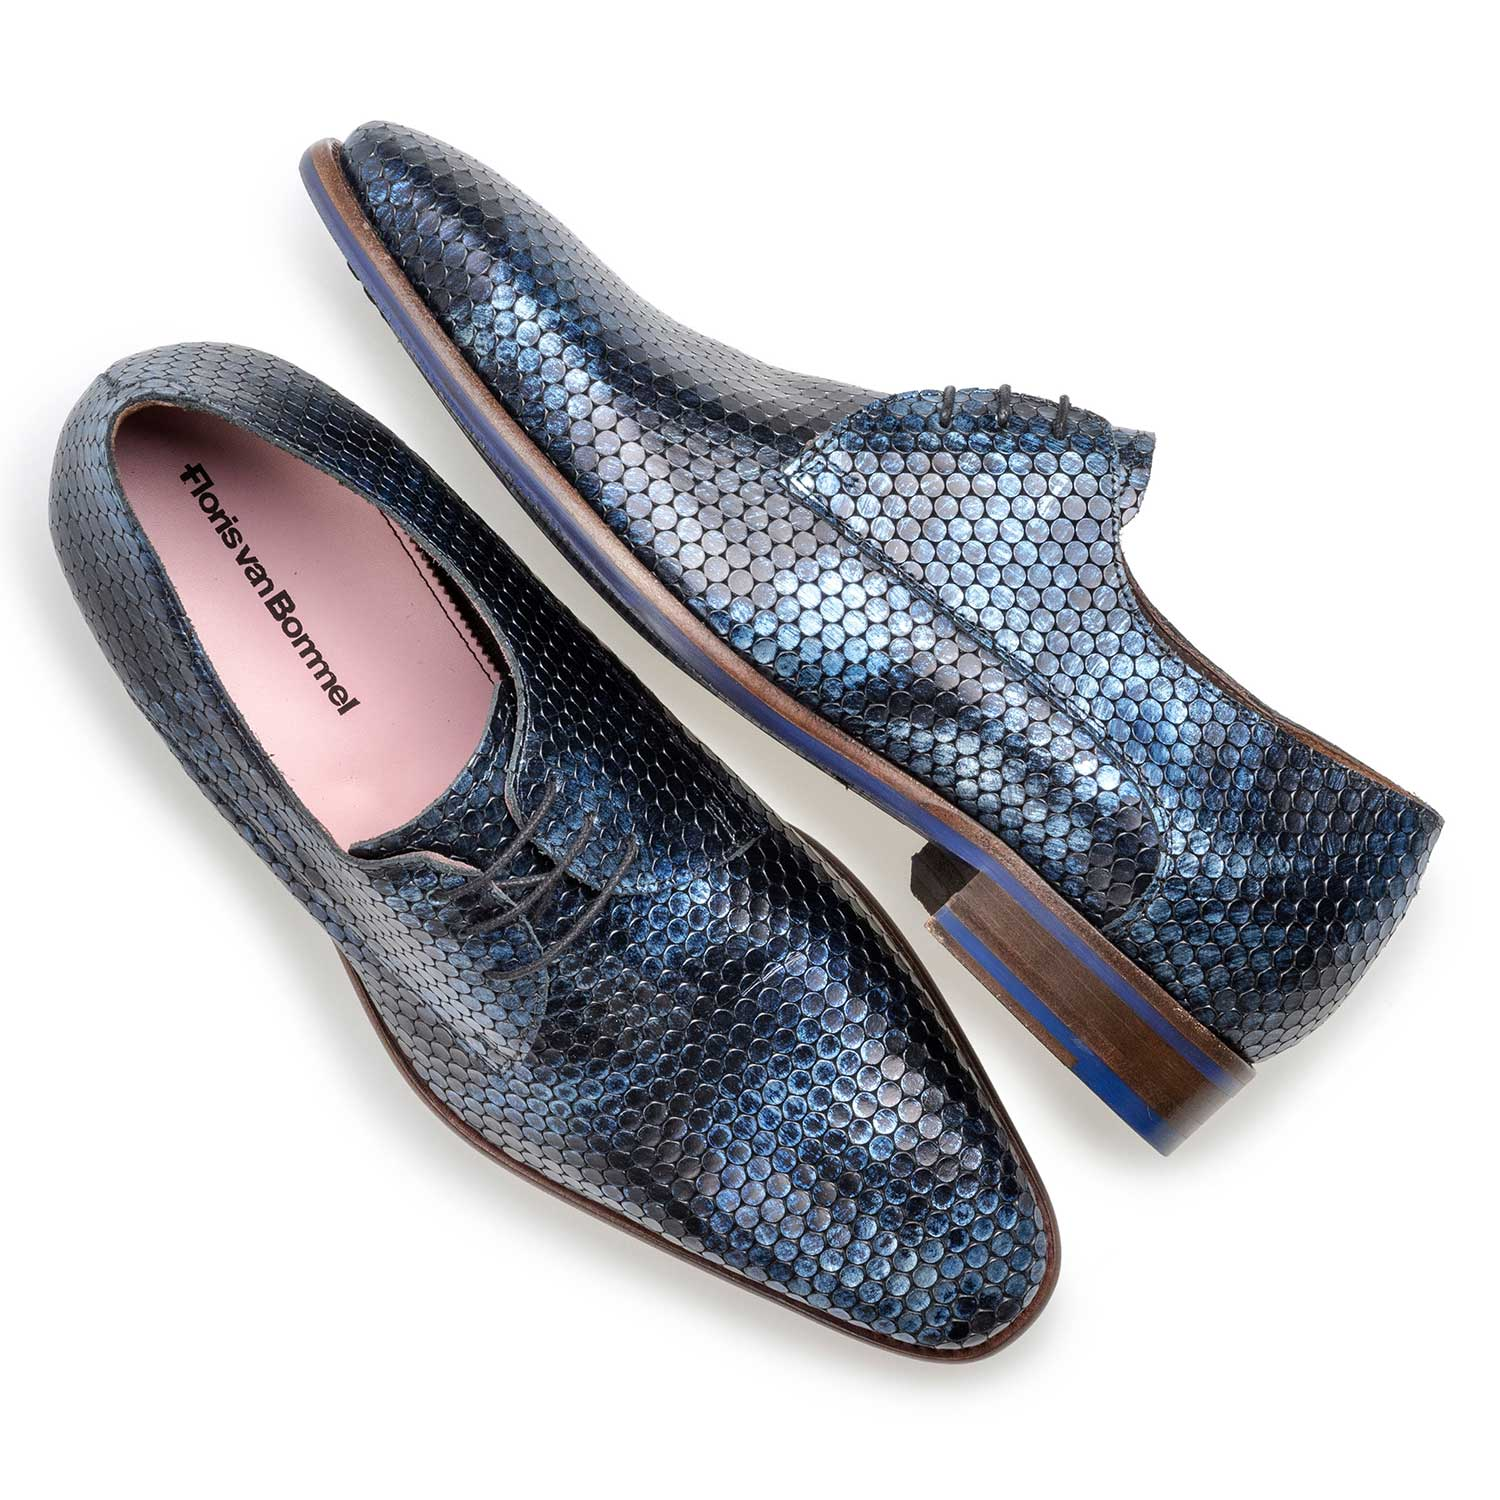 18080/04 - Blue metallic print leather lace shoe